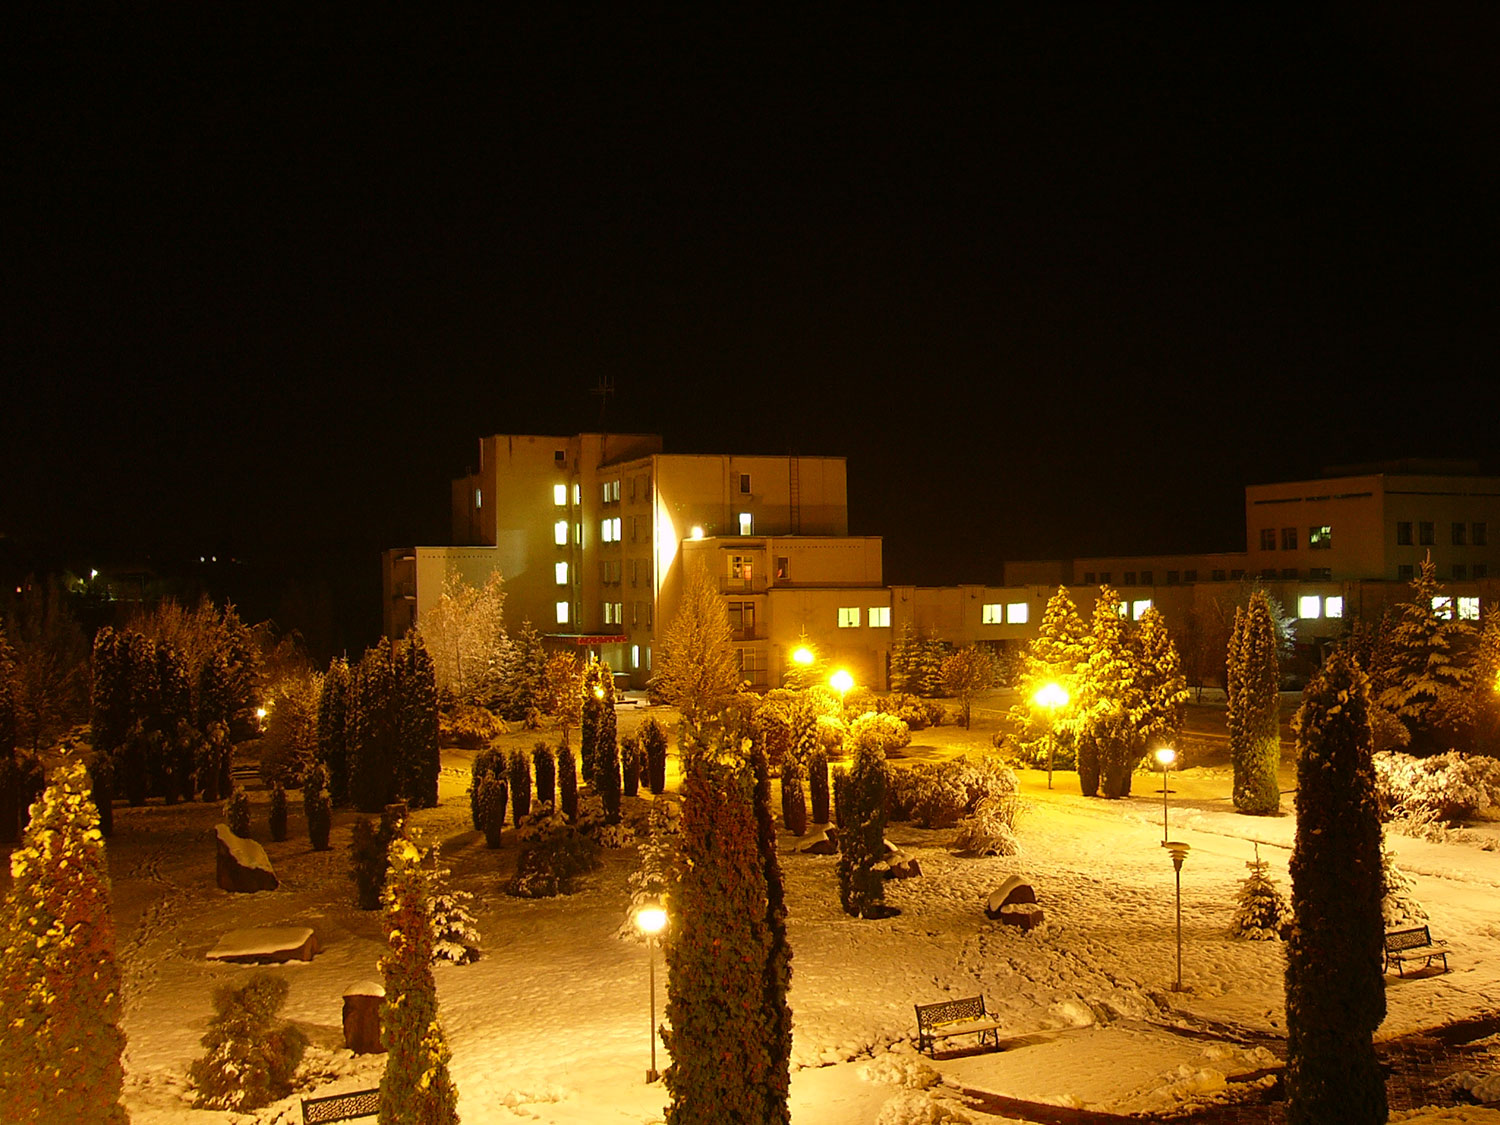 Medobory at night in winter